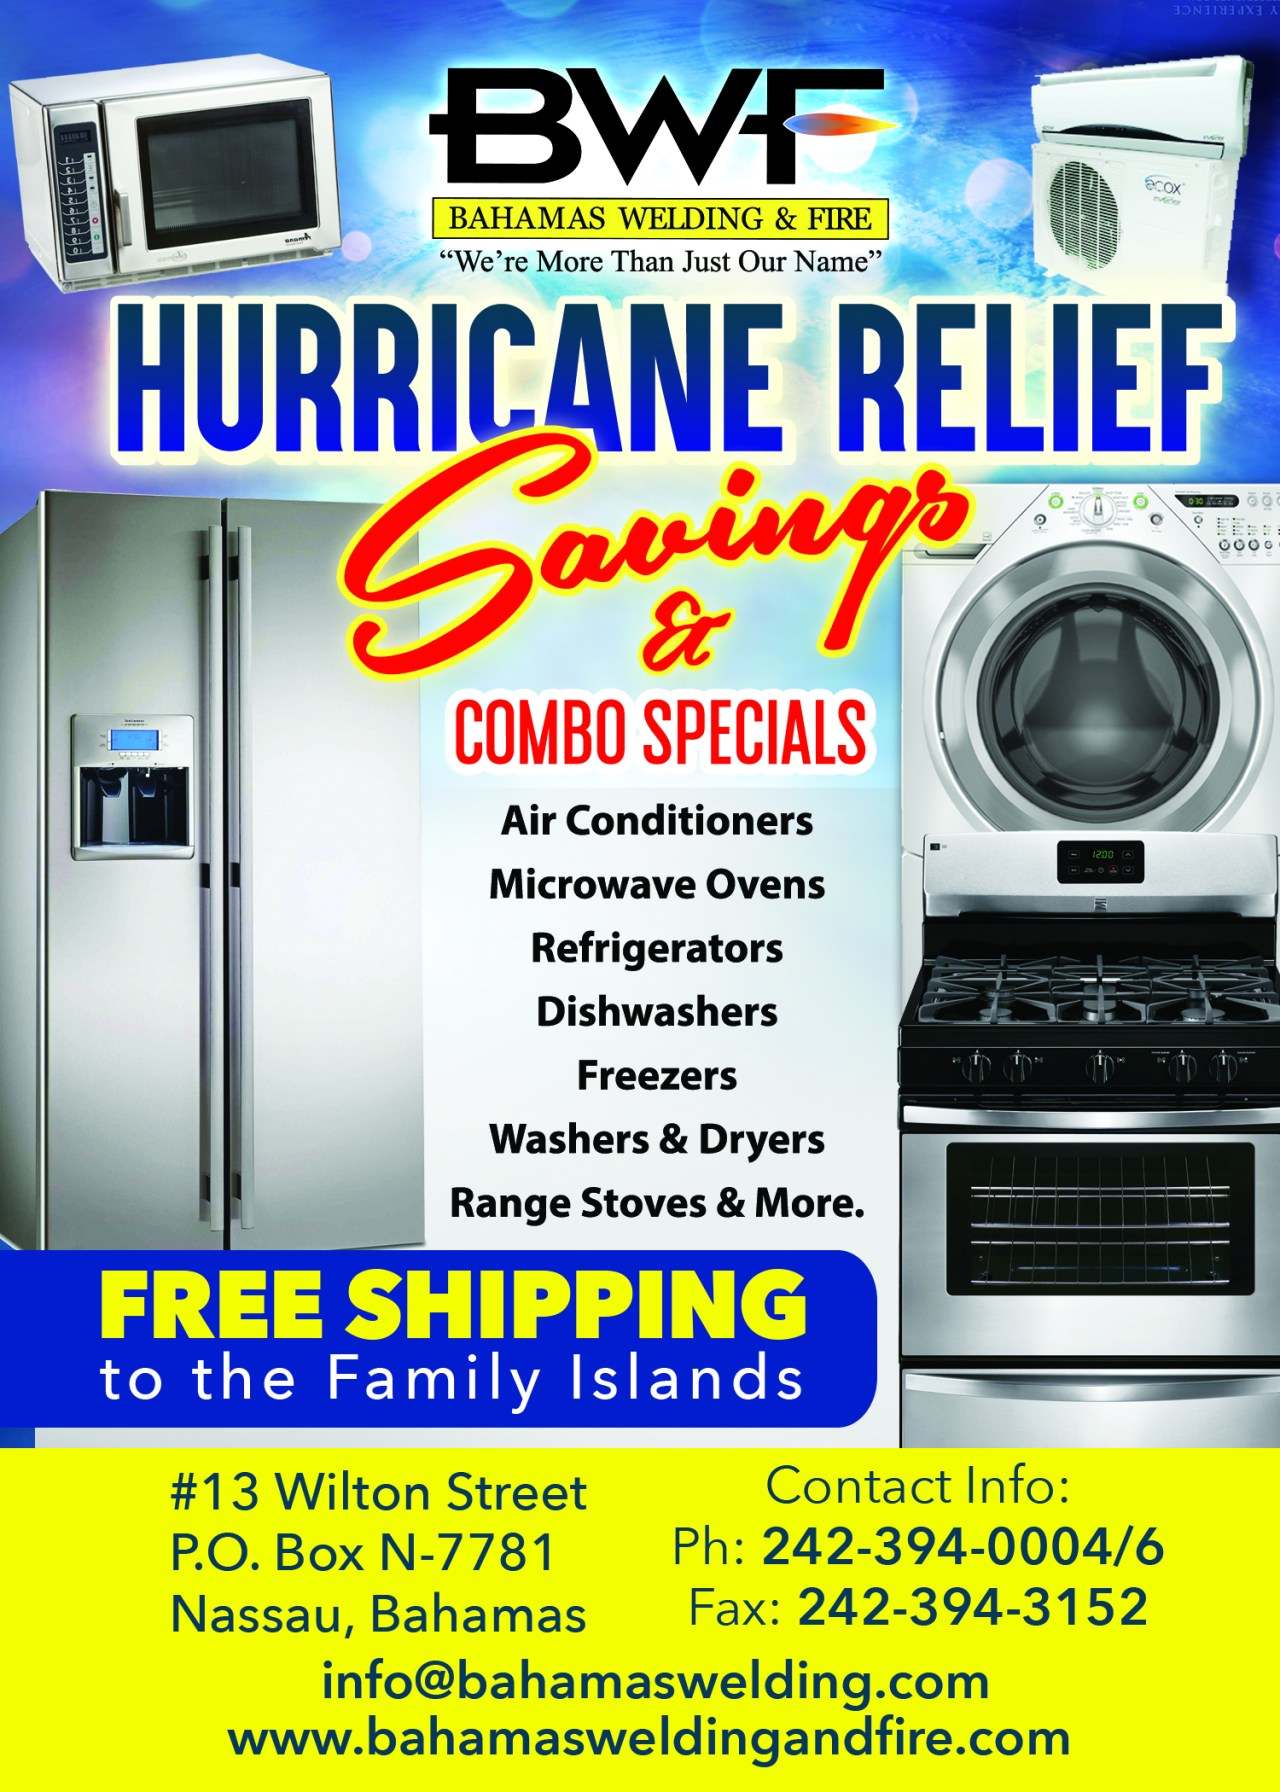 5-x-7-hurricane-relief-and-savings-2016-flyer-2